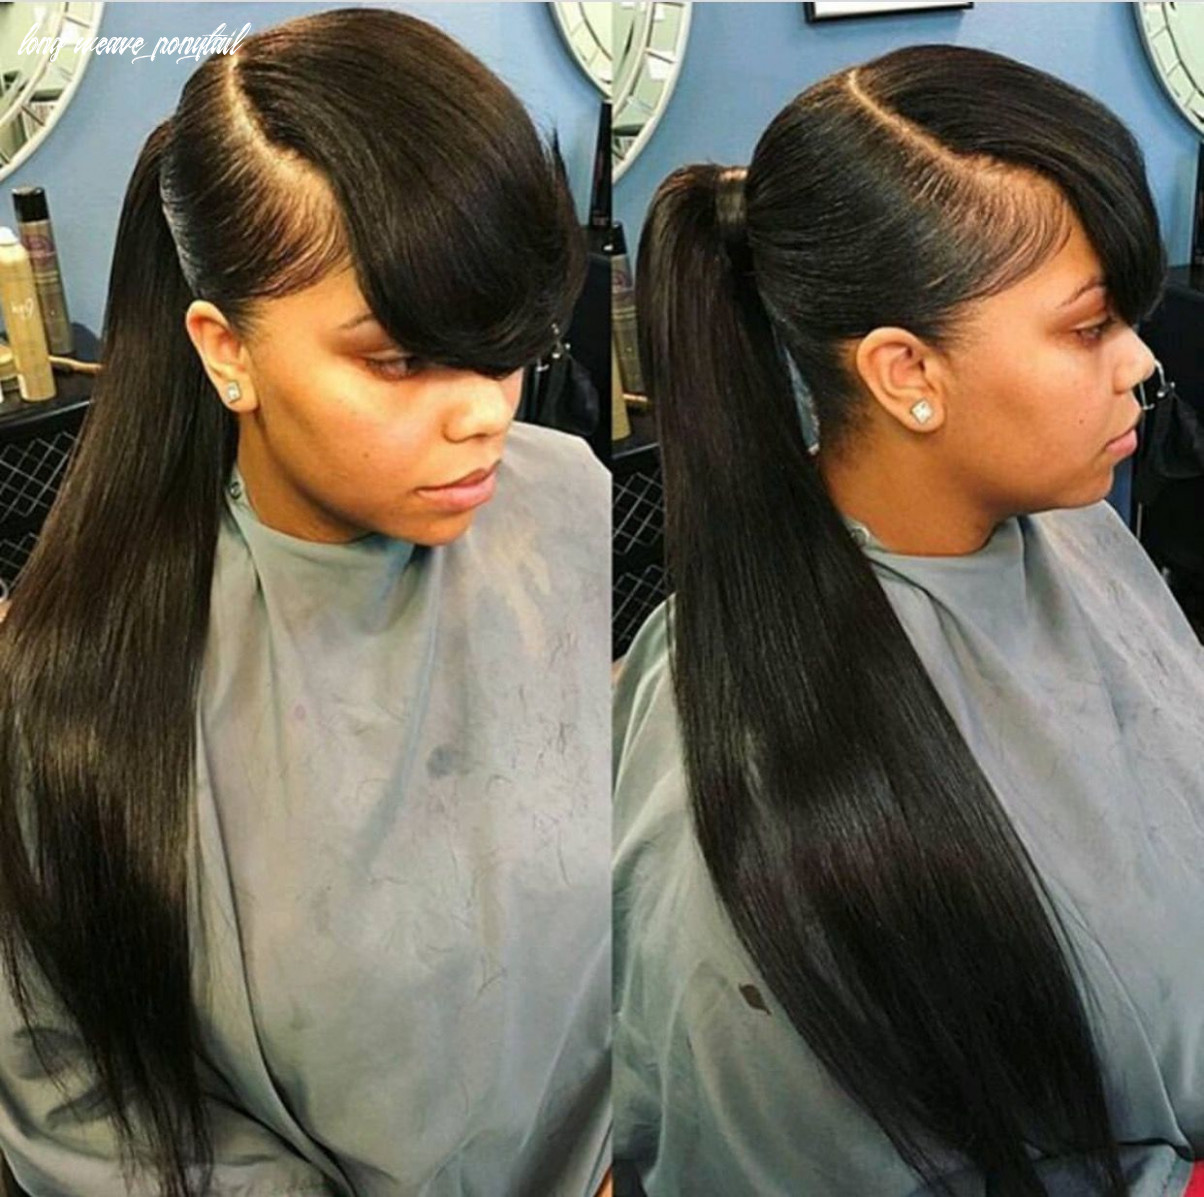 """TheExtraMile!"""" - long pony and bangs. 